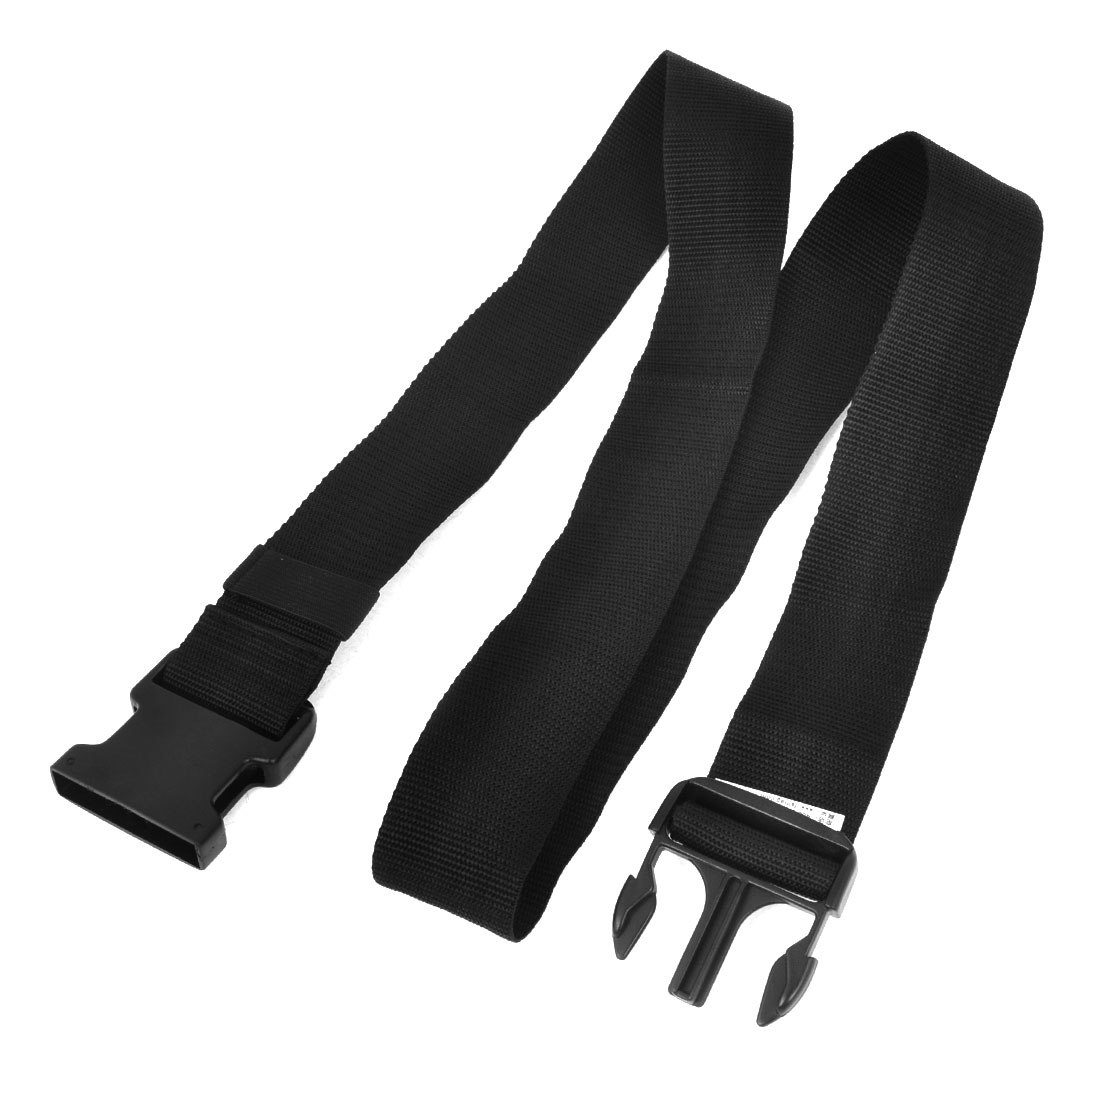 Release Buckle Nylon Oxford Electrician Tool Bag Waist Strap